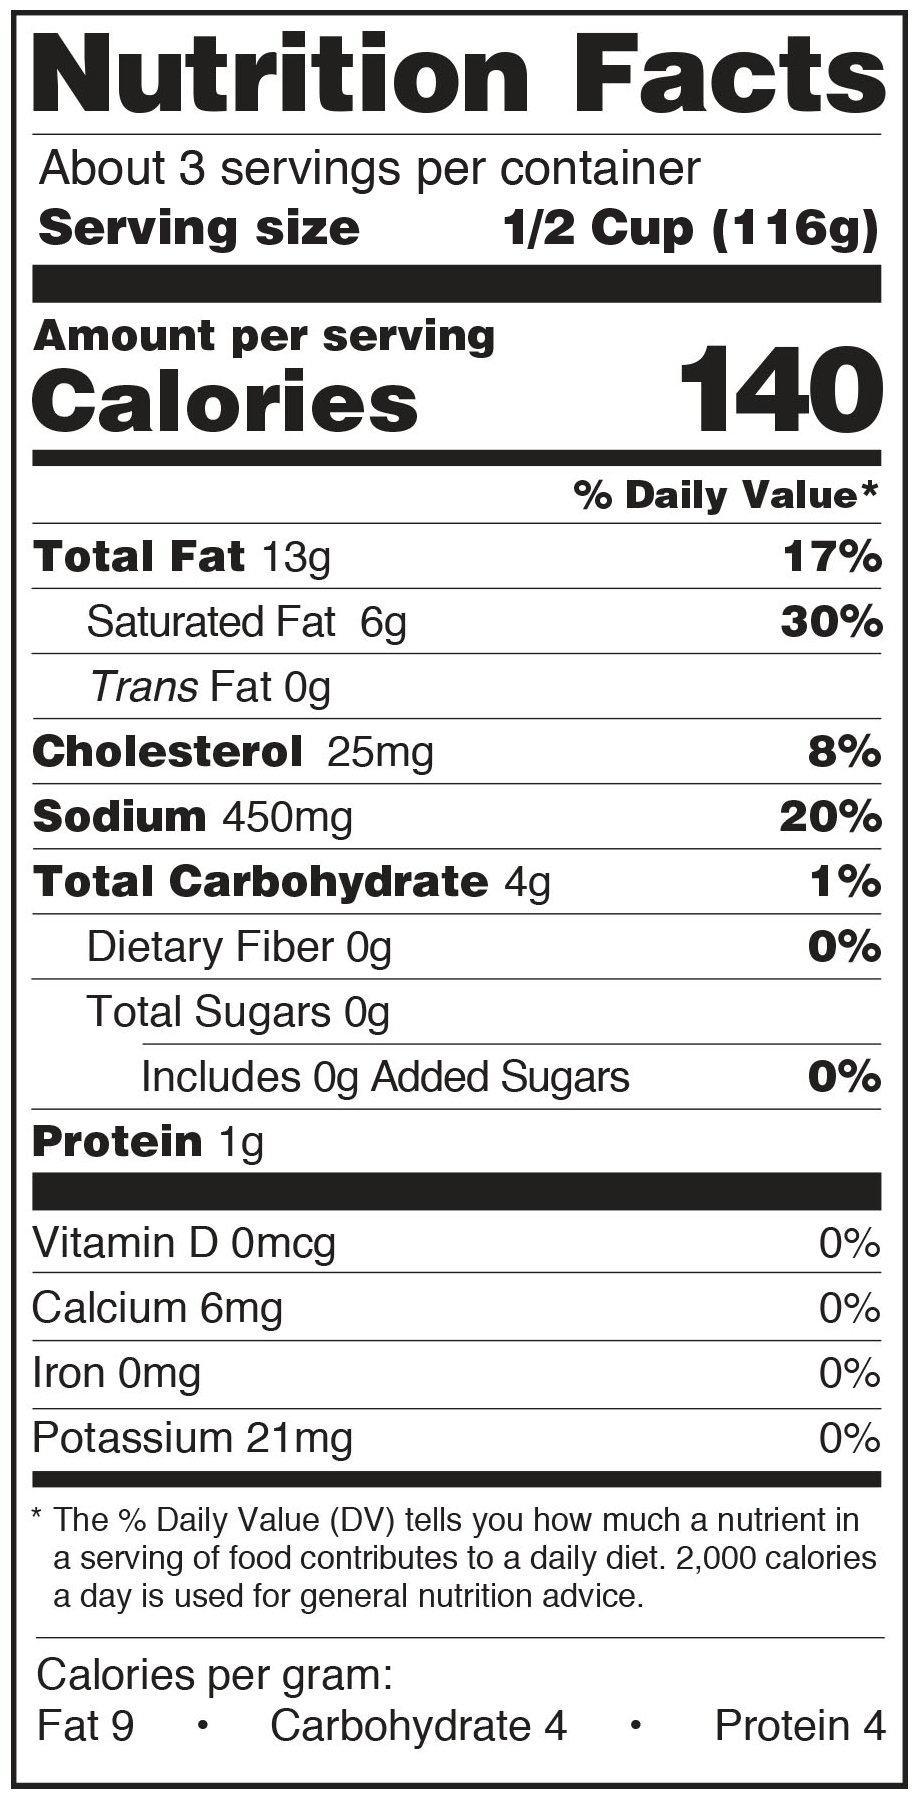 Paesana Francese Nutrition Facts Panel